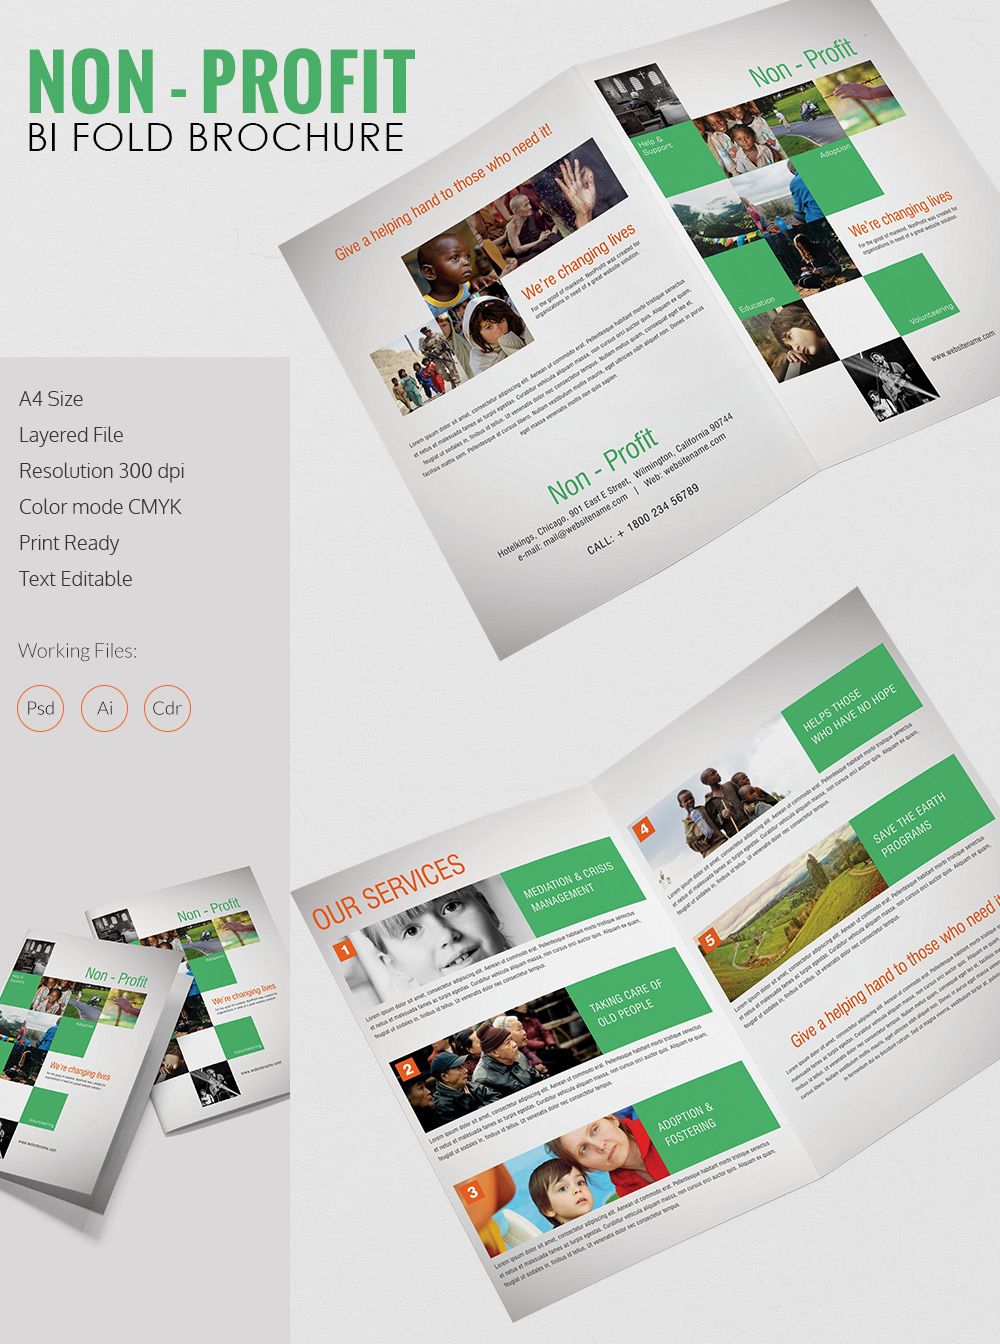 Bi Fold Brochure Template Illustrator Free